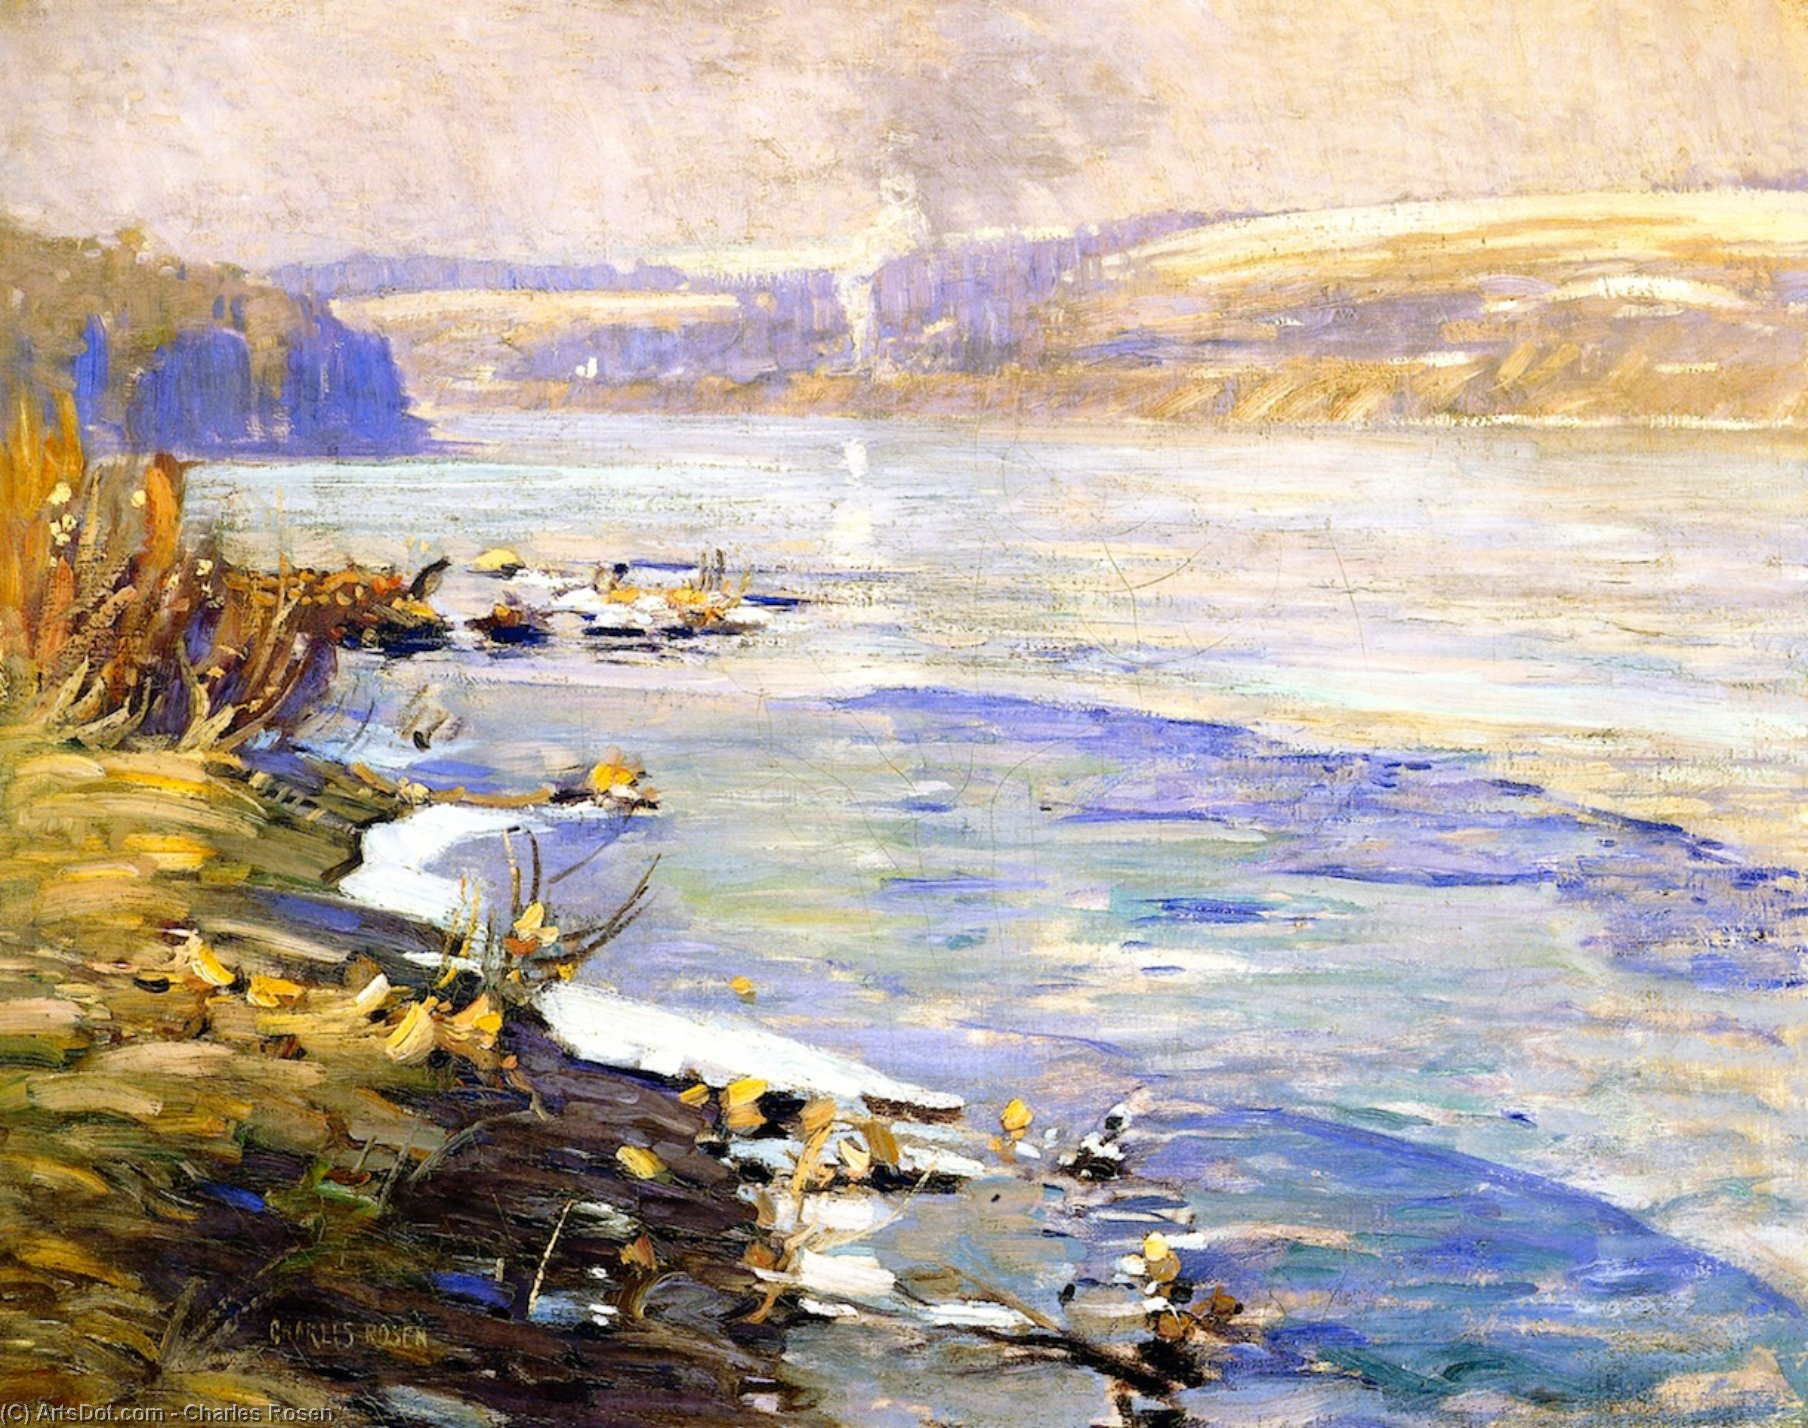 Delaware River near New Hope, Pennsylvania, Watercolour by Charles Rosen